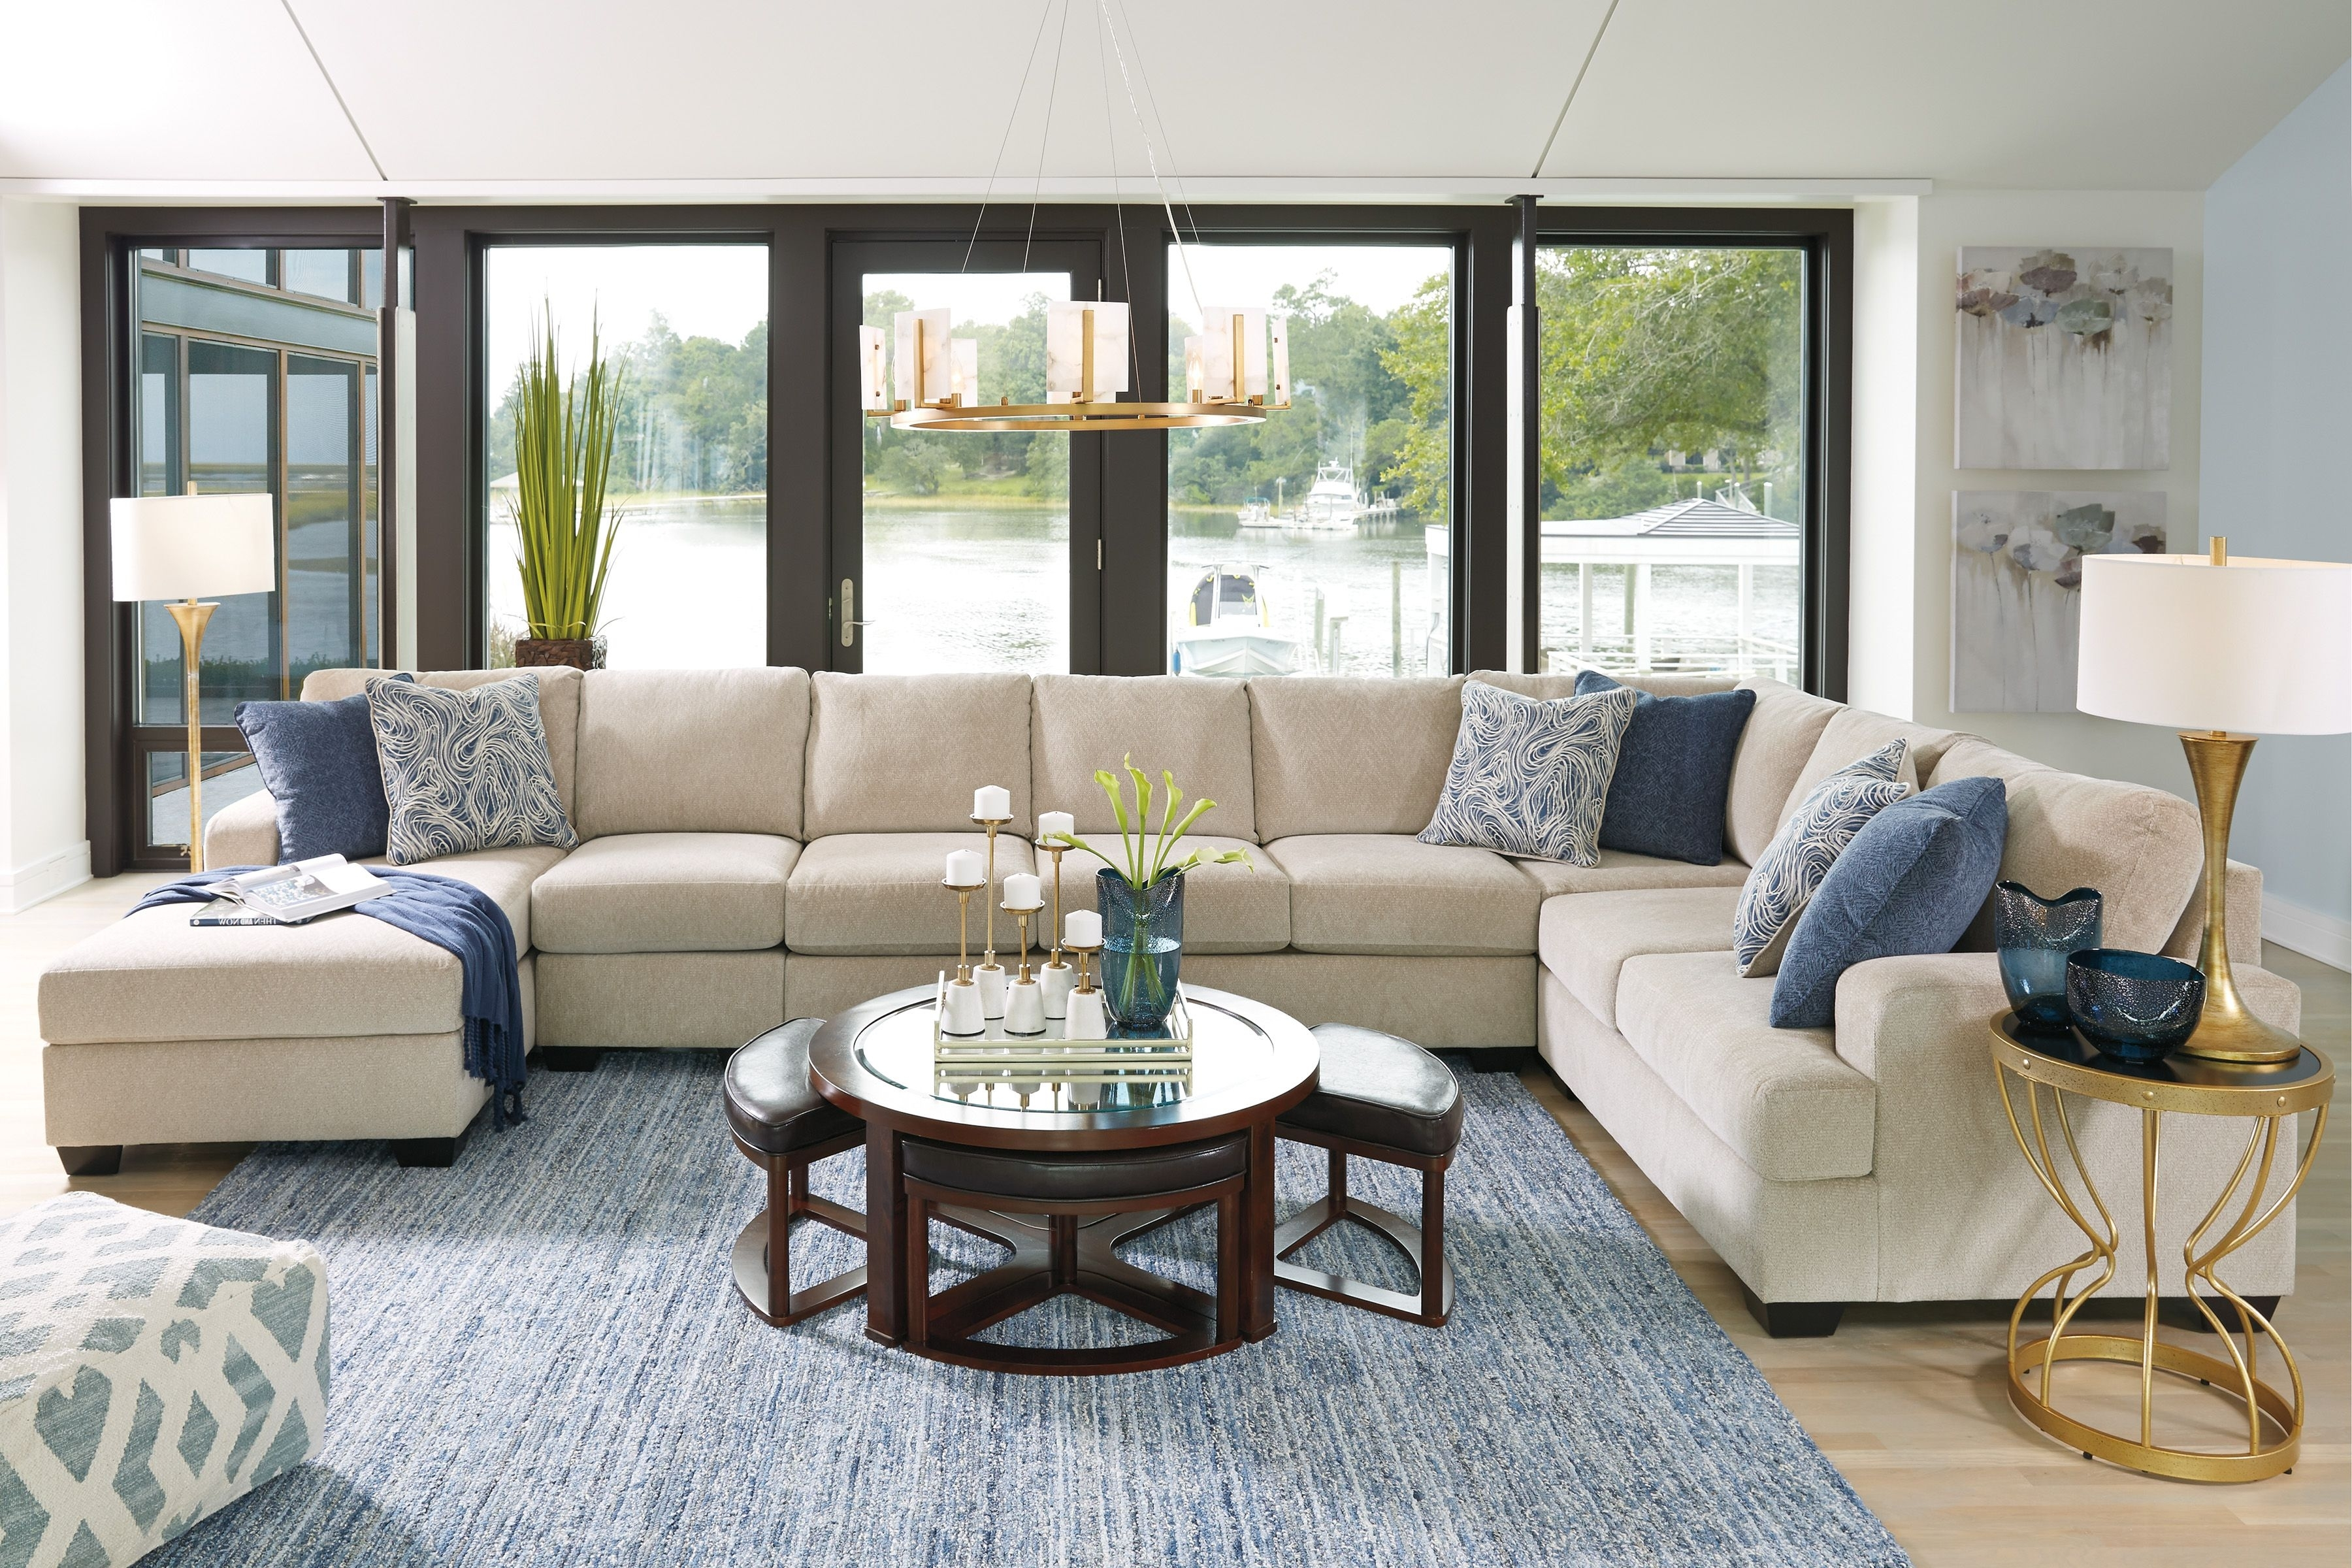 Enola 4 Piece Laf Sectional   Contemporary Living   Pinterest For Benton 4 Piece Sectionals (Image 11 of 25)